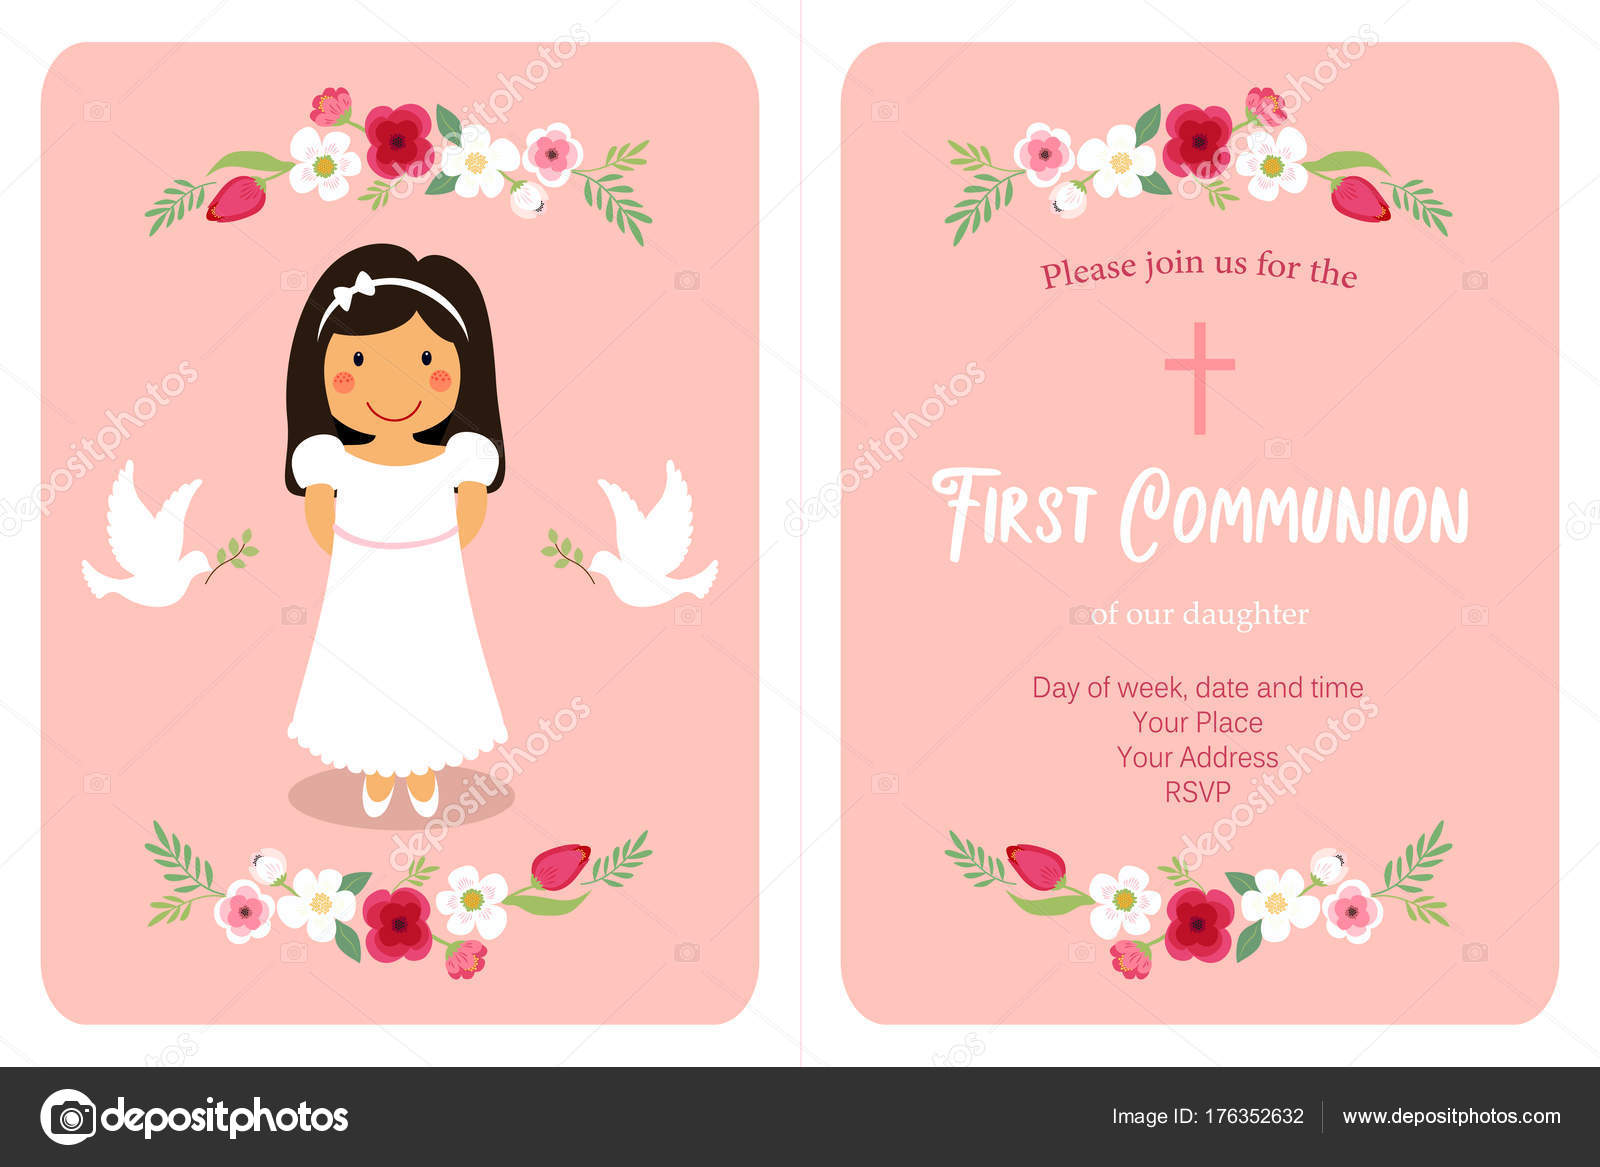 picture about First Communion Cards Printable named Printable catholic very first communion playing cards Adorable Initial